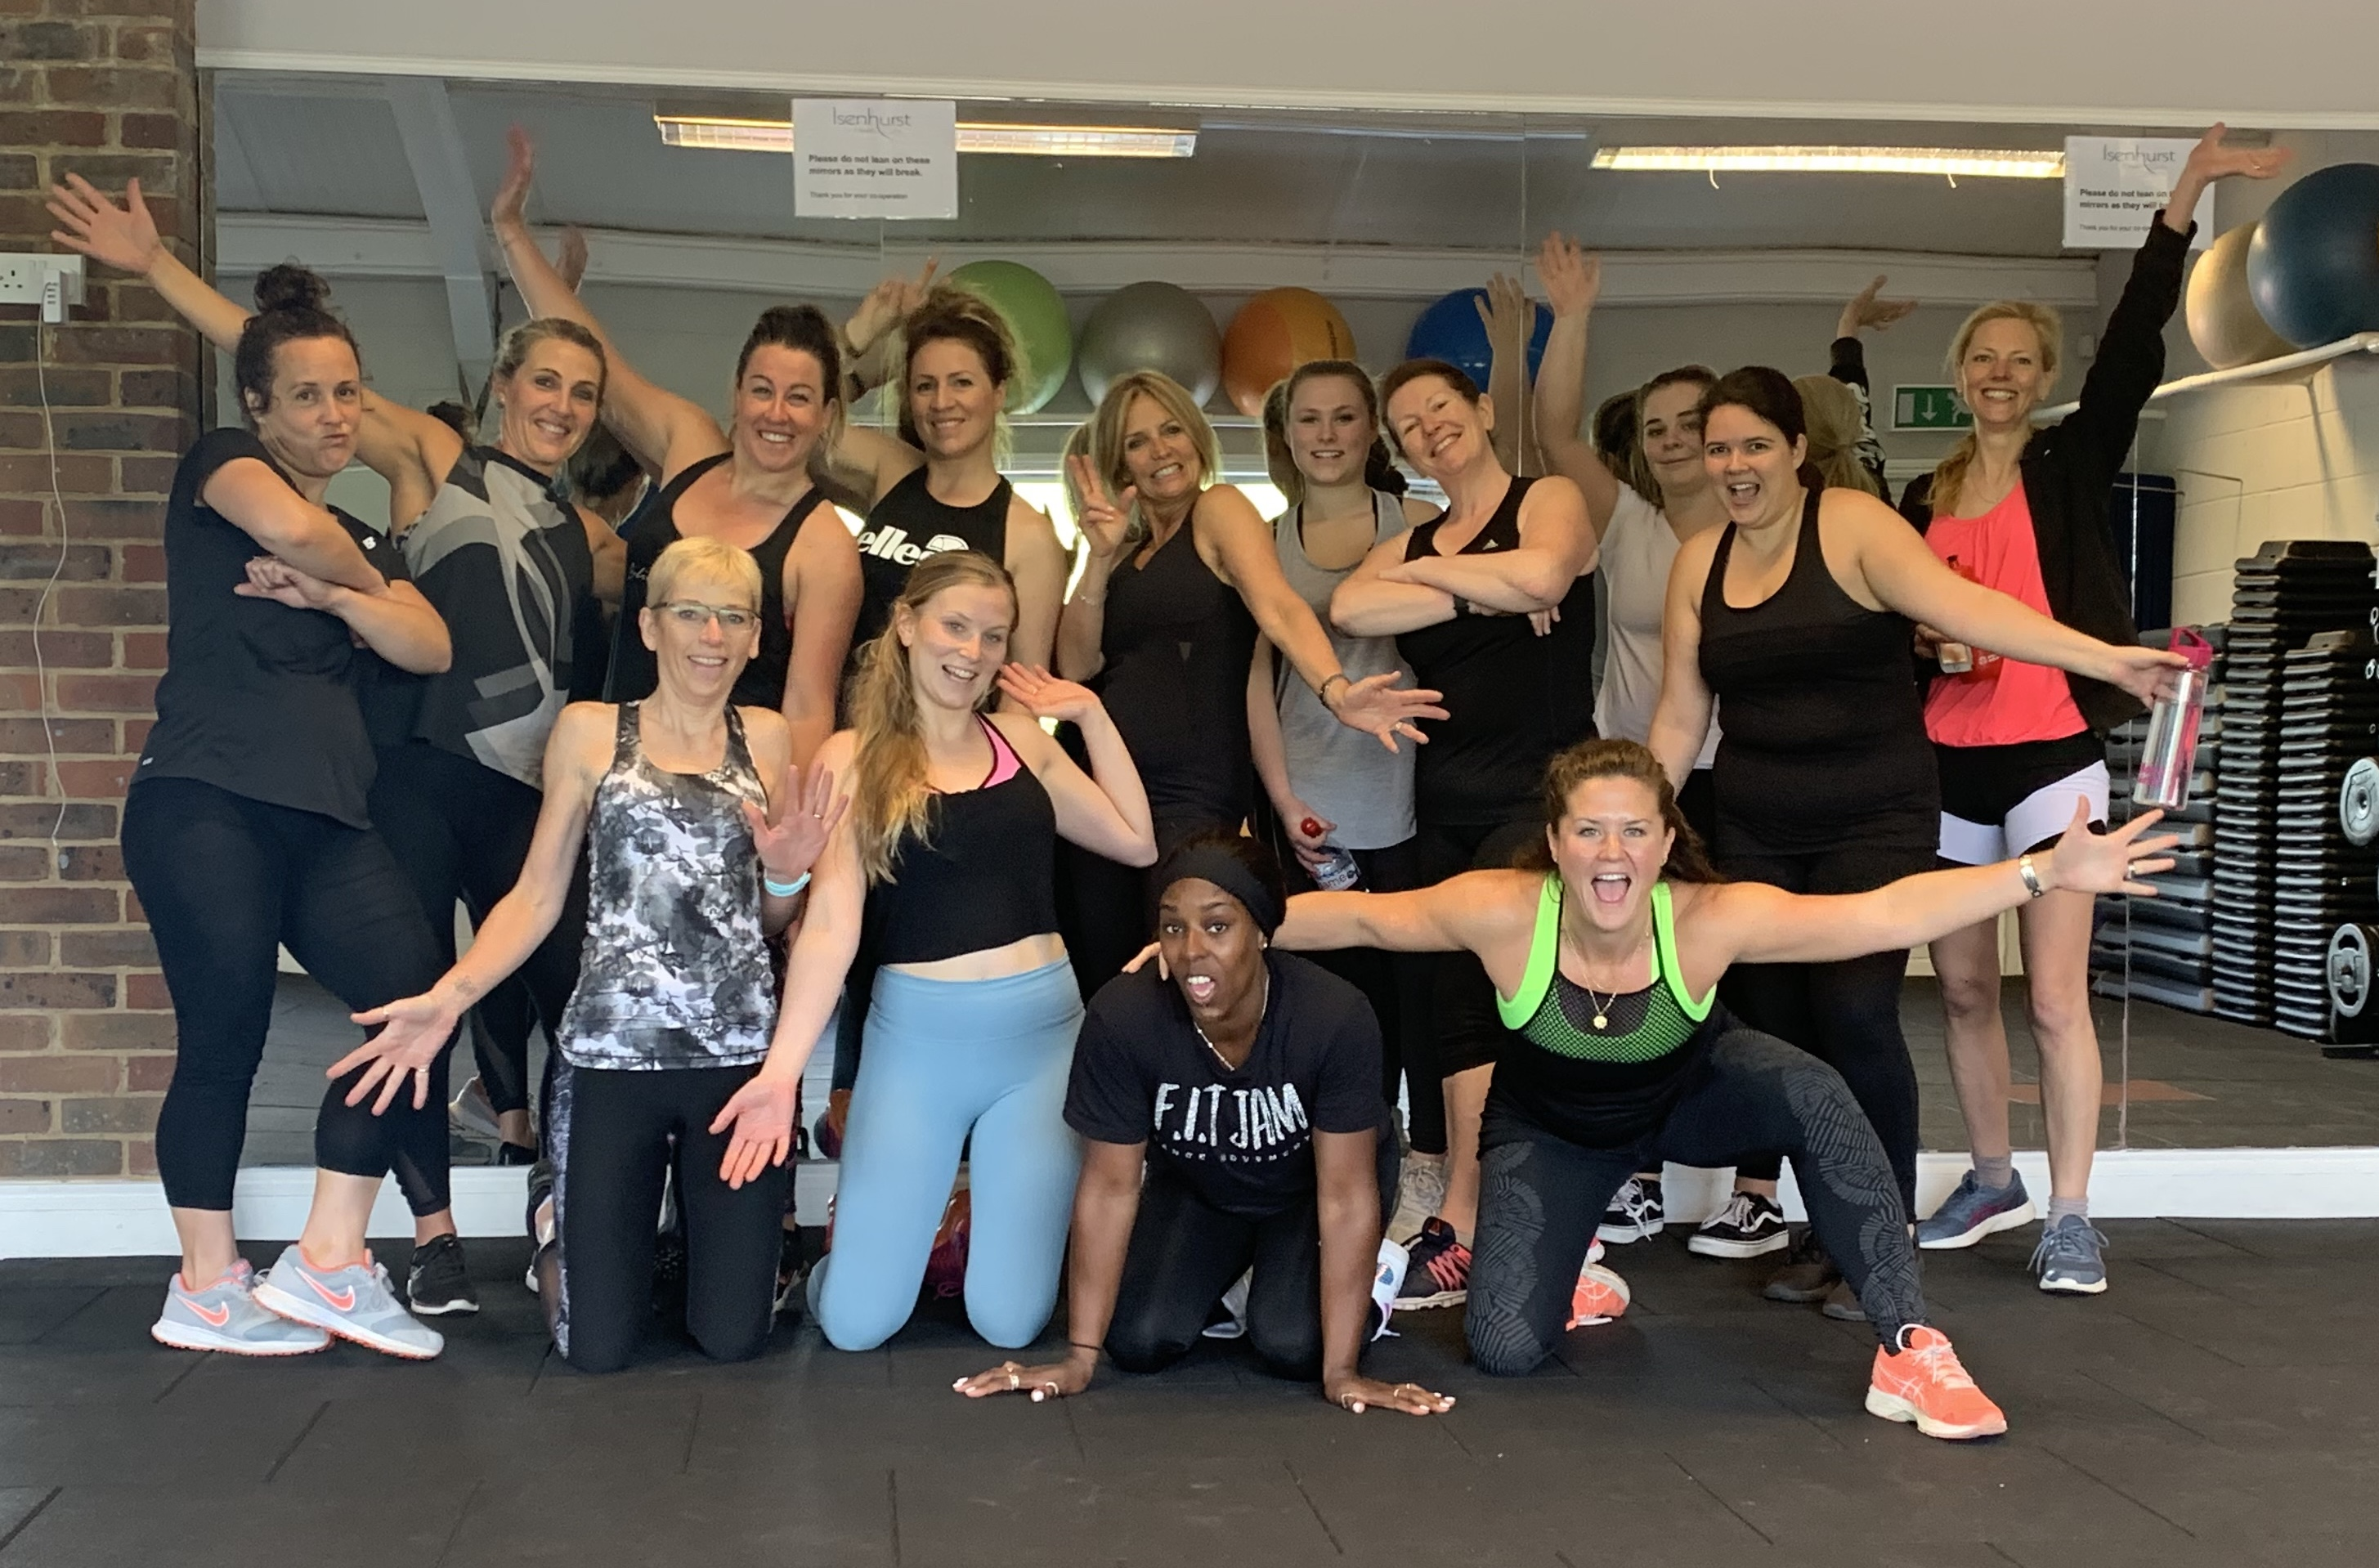 Isenhurst's series of Pop-Up Classes Continues with FIT Jam and Band Burn at Cross In Hand